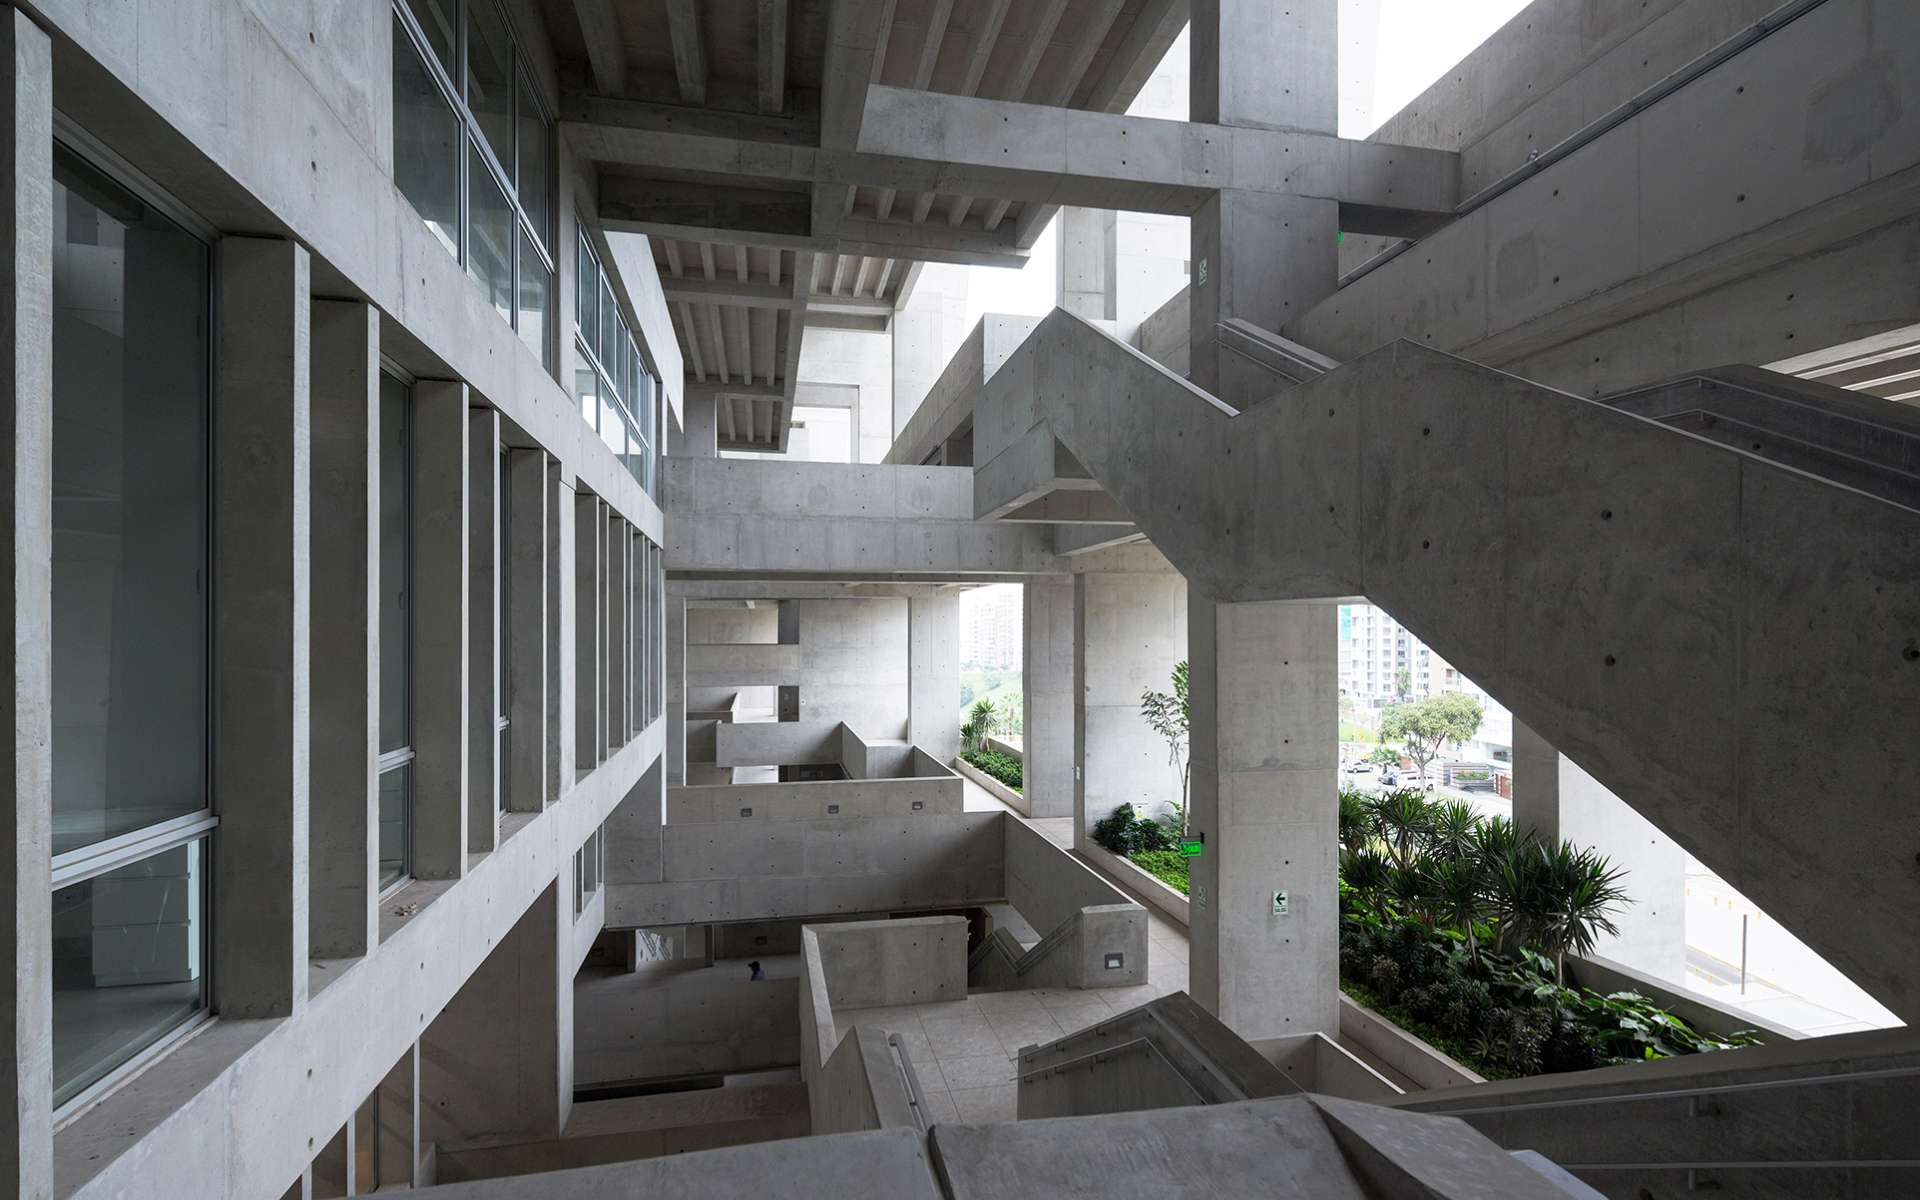 L'Universidad de Ingenieria y Technologia de Lima, au Pérou. © Courtesy of Iwan Baan, The Pritzker Architecture Prize